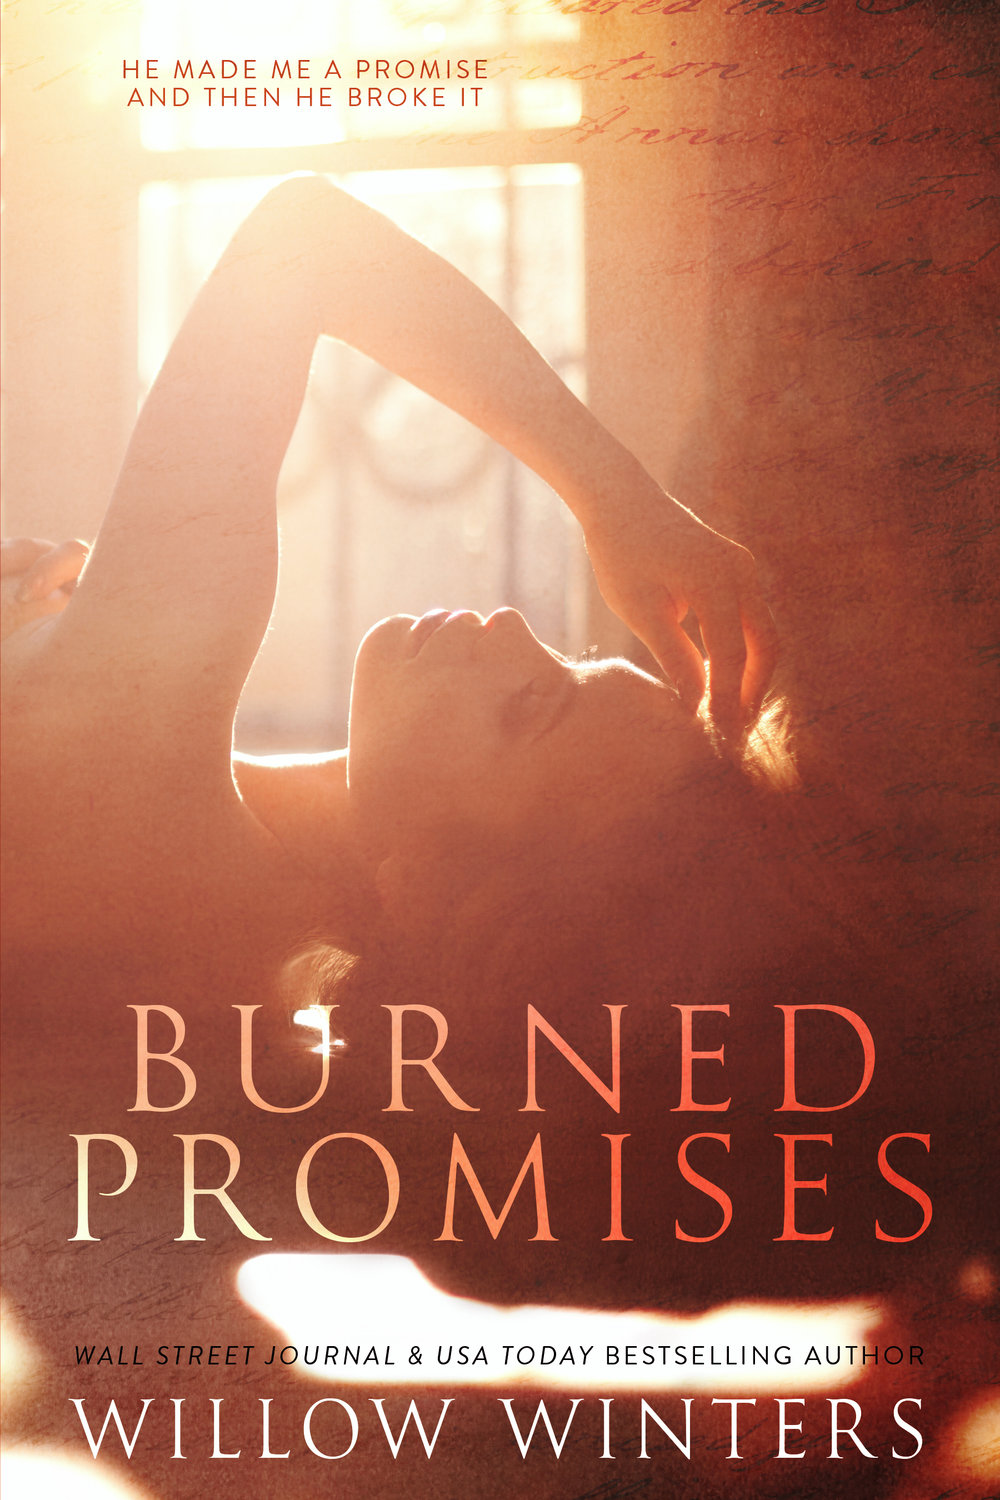 BURNED_PROMISES_COVERONLY.jpg